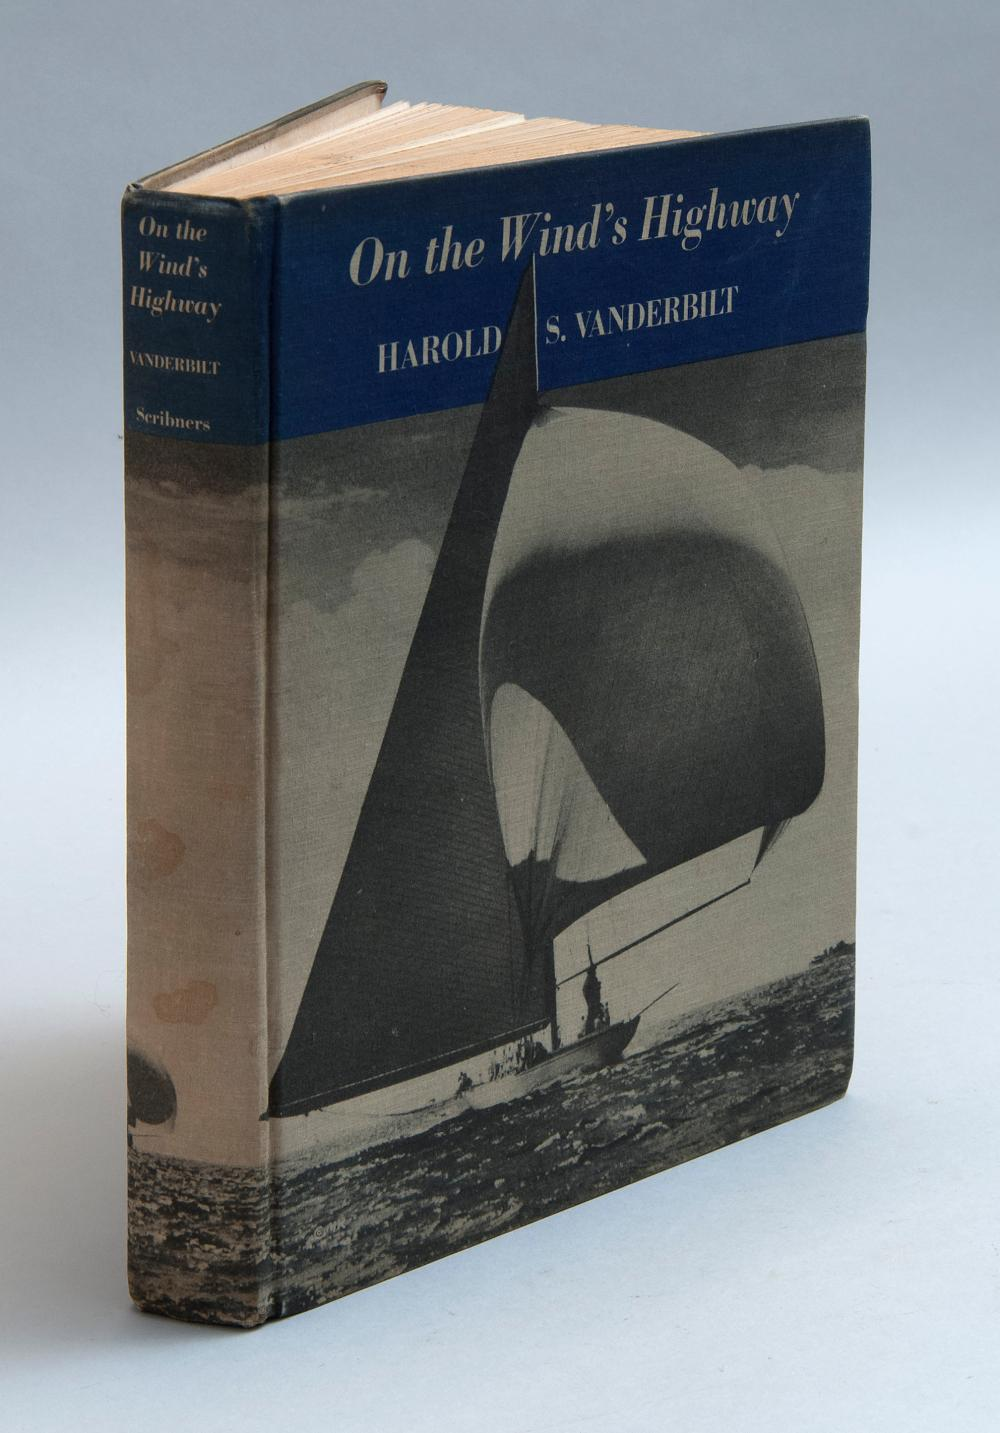 VOLUME ON YACHTING On the Wind's Highway: Ranger, Rainbow and Racing by Harold S. Vanderbilt (London: Charles Scribner's Sons, 1939).